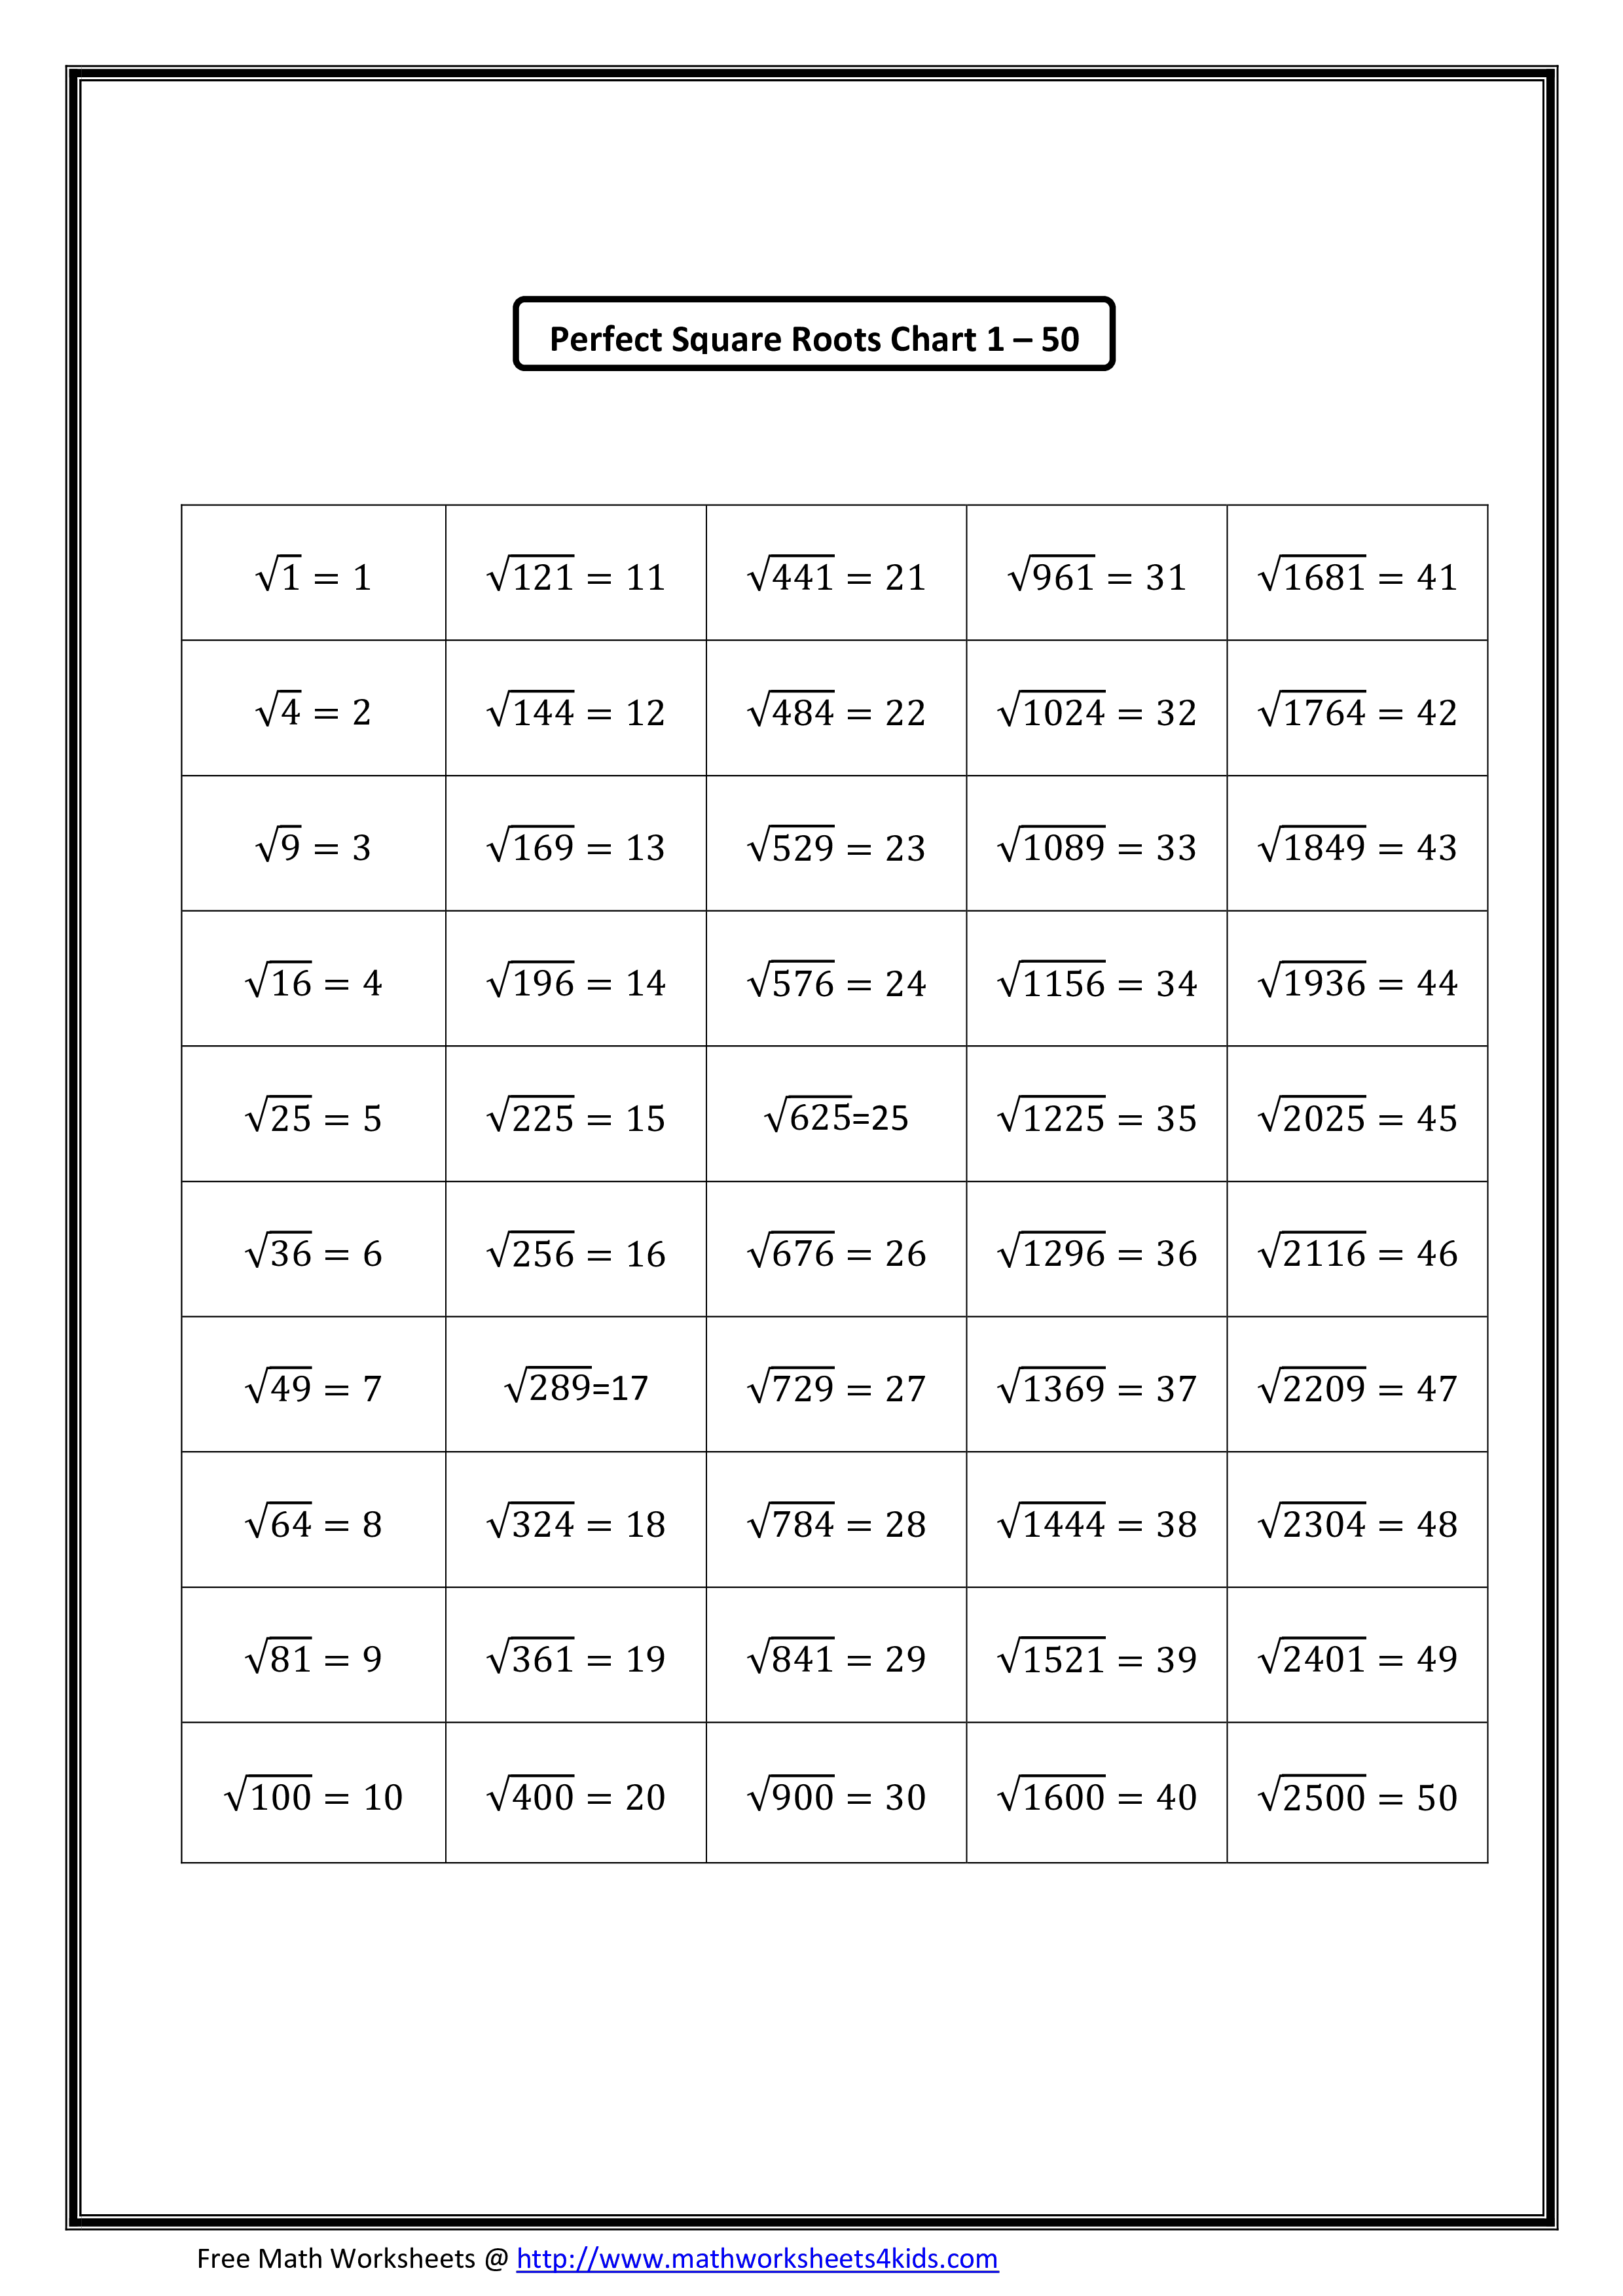 Quiz   Worksheet   Ascending Order   Study additionally Prime Numbers   Teaching Ideas likewise The Sieve of Eratosthenes  Explanation   Overview   Study besides  moreover  as well In Your Prime – Prime Math Games as well Sieve Of Eratosthenes Worksheets   Teaching Resources   TpT further  besides Worksheet likewise  together with  together with Printable Math Worksheets at DadsWorksheets     Part 2 likewise Sieve Of Eratosthenes Worksheets   Teaching Resources   TpT as well Prime and  posite Numbers   Worksheets together with Prime Number Chart 1 100   Wiring Diagram Database as well . on sieve of eratosthenes worksheet printable